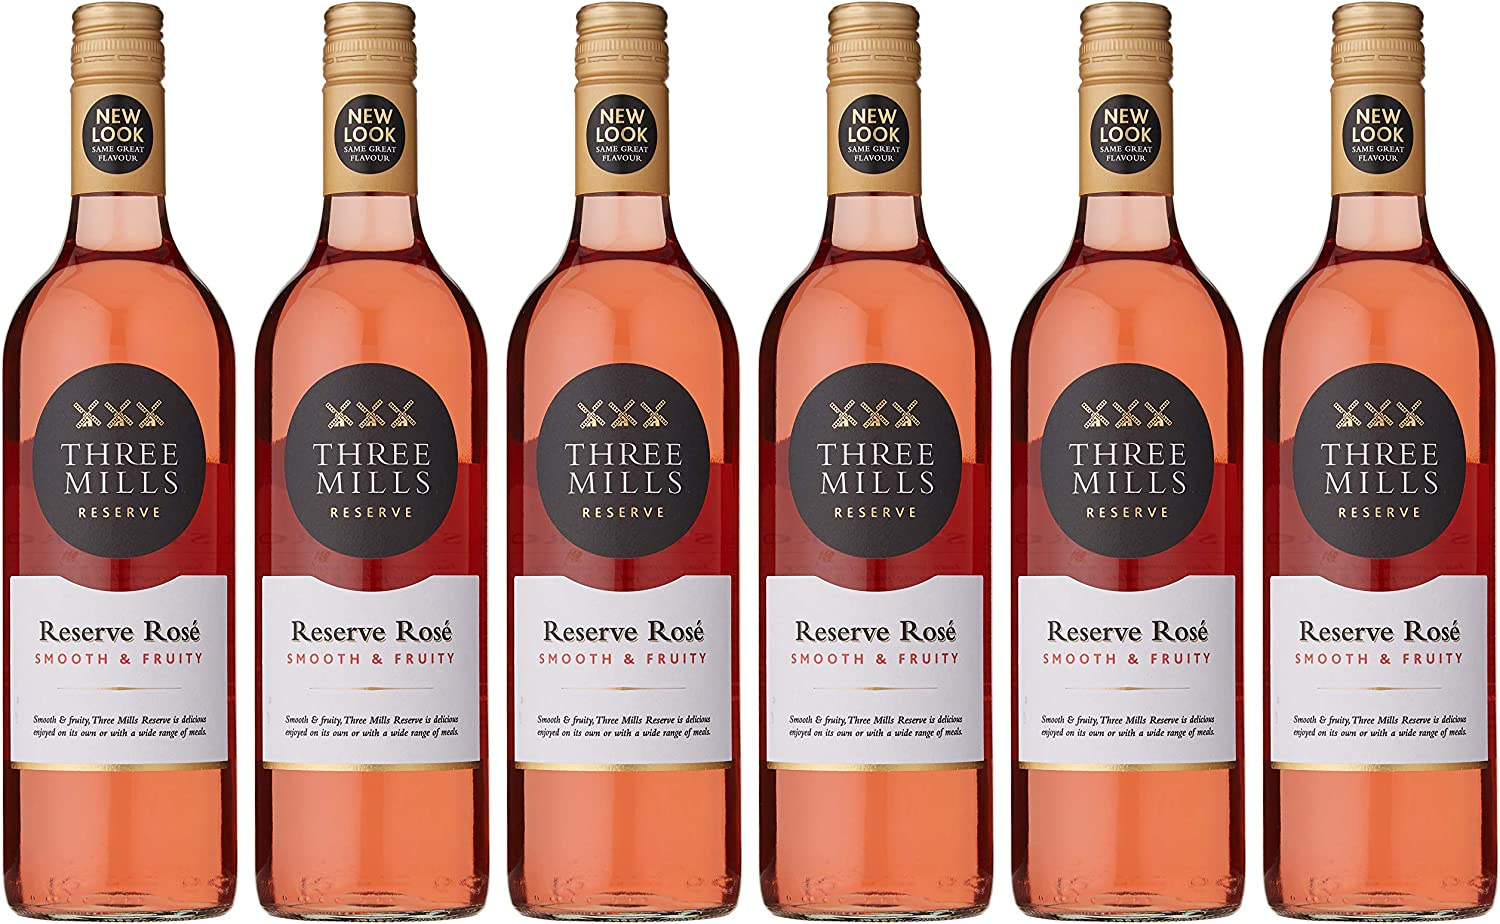 Broadland Wineries – Three Mills Reserve Rose Wine, 75 cl Case of 6